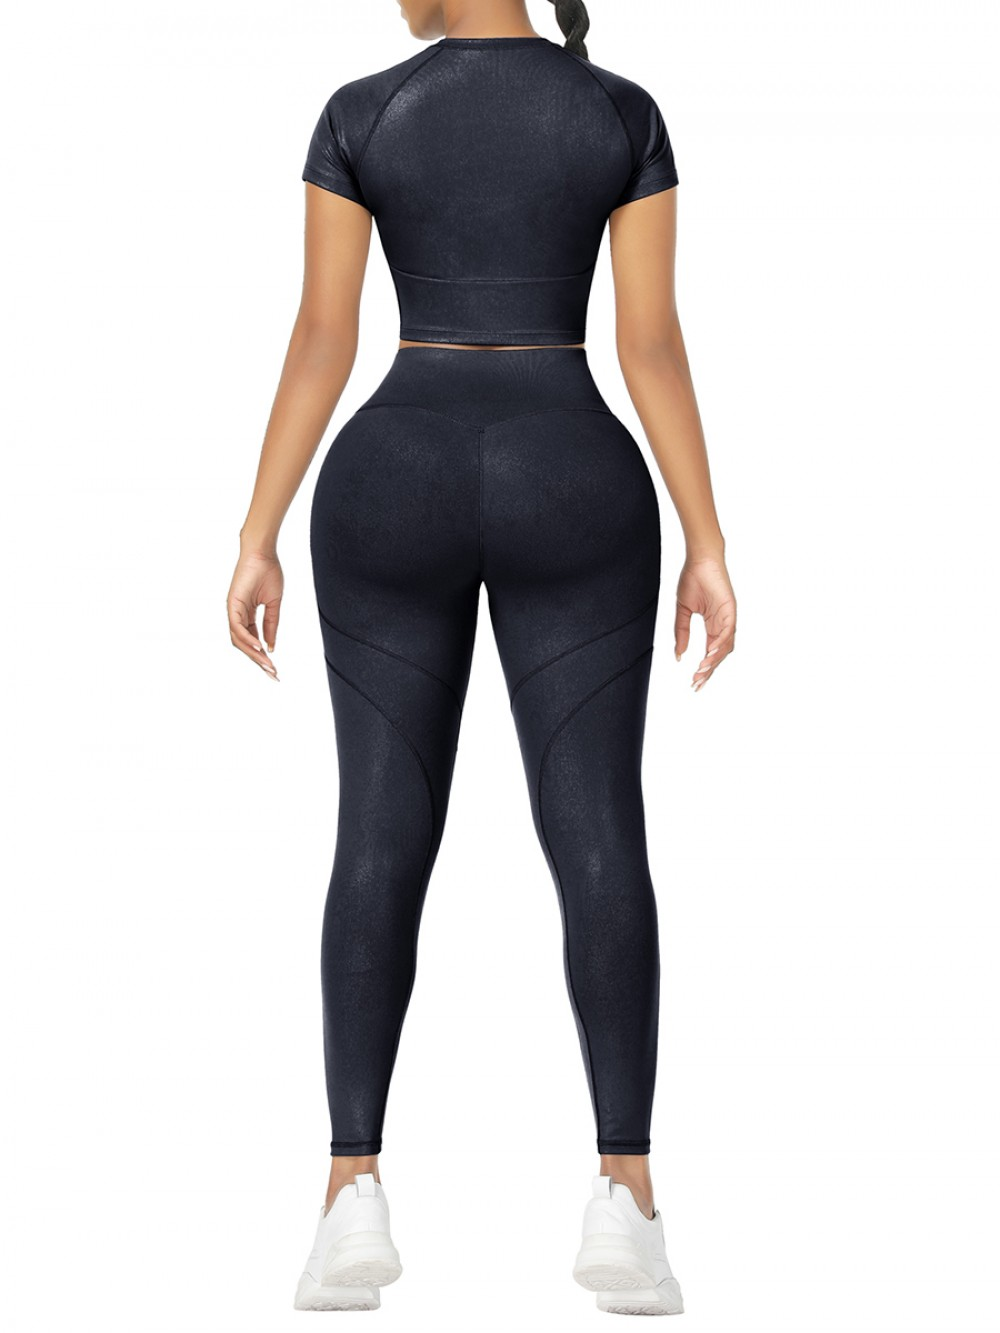 Black Short Sleeves High Waist Yoga Suits For Fitness